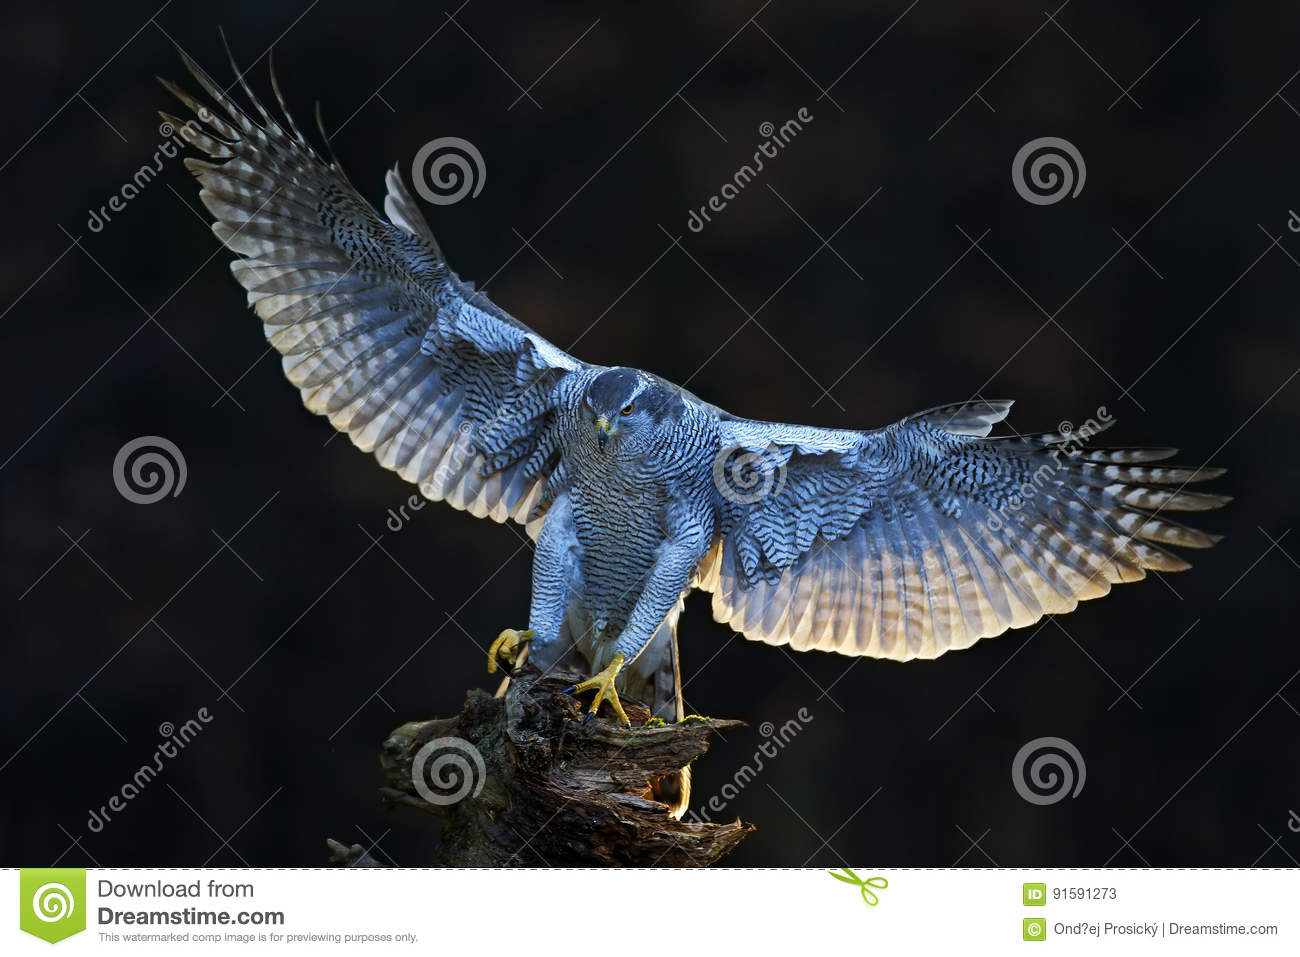 Aciton wildlife scene from forest, with bird. Goshawk, flying bird of prey with open wings with evening sun back light, nature for